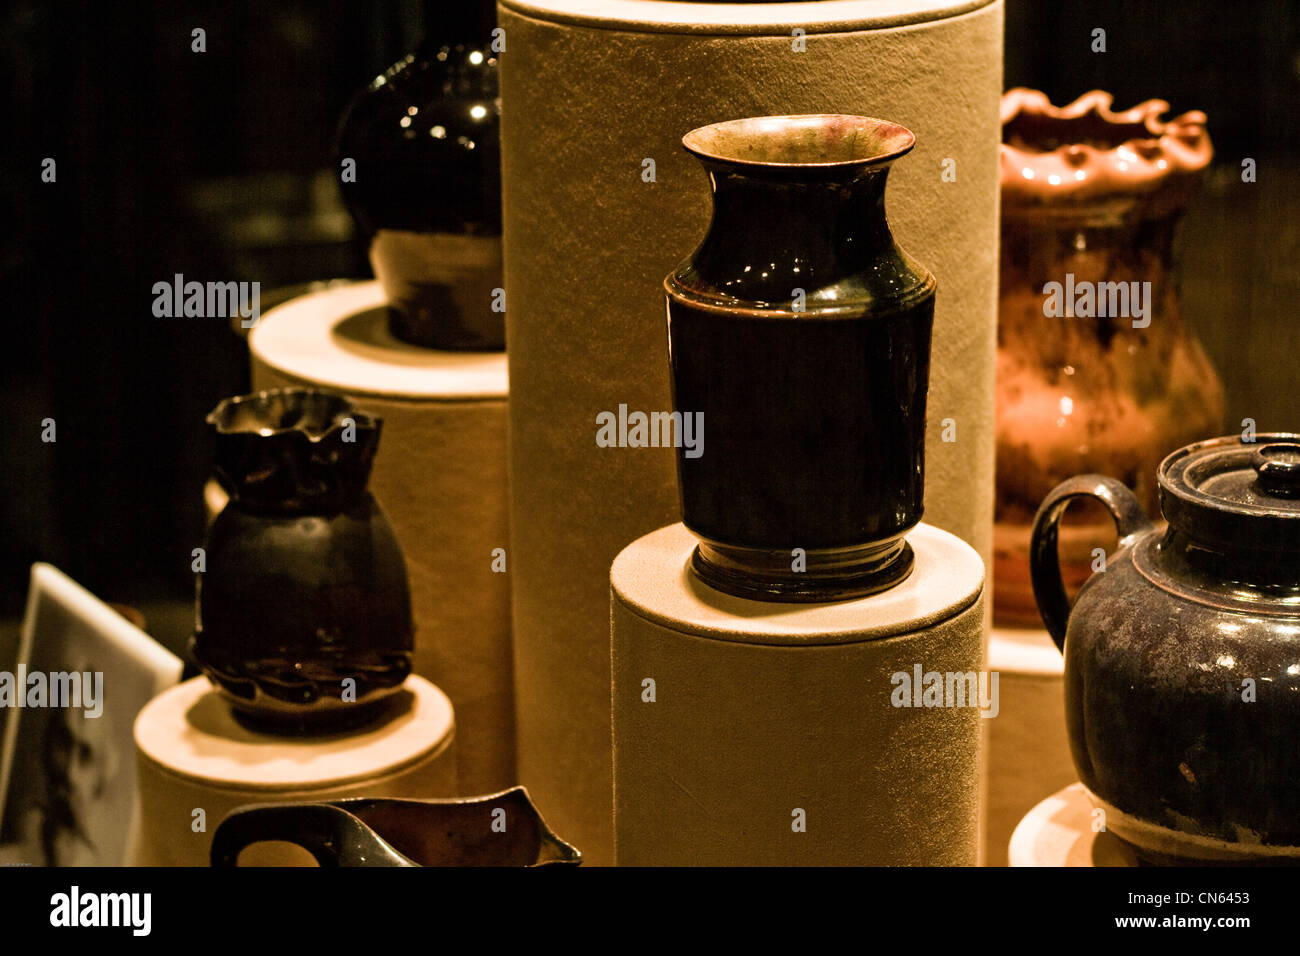 A window display in a department store. - Stock Image